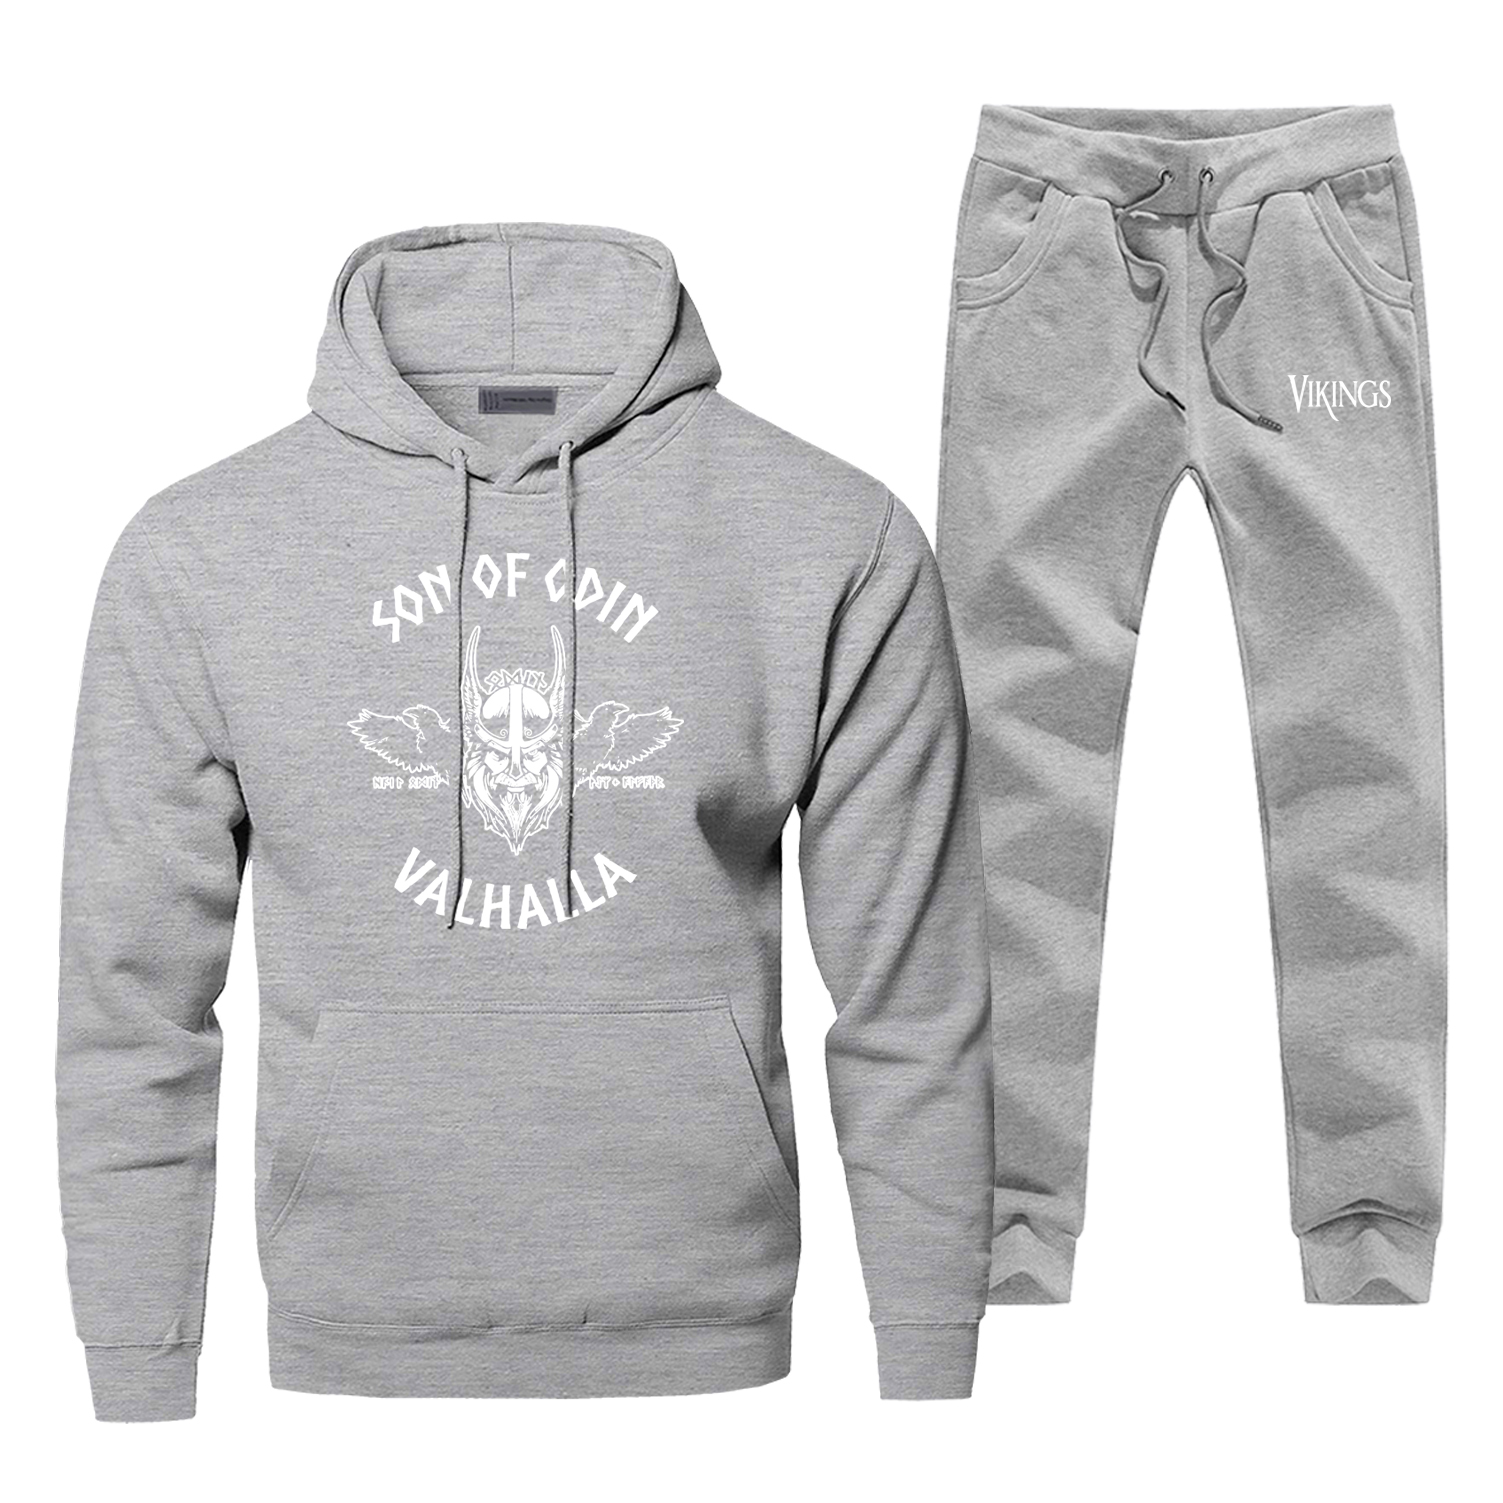 Sons Of Odin The Vikings Men's Full Suit Tracksuit Valhalla TV Show Gray Hoodies Pants Fleece Male Sets Hipster Sportsman Wear